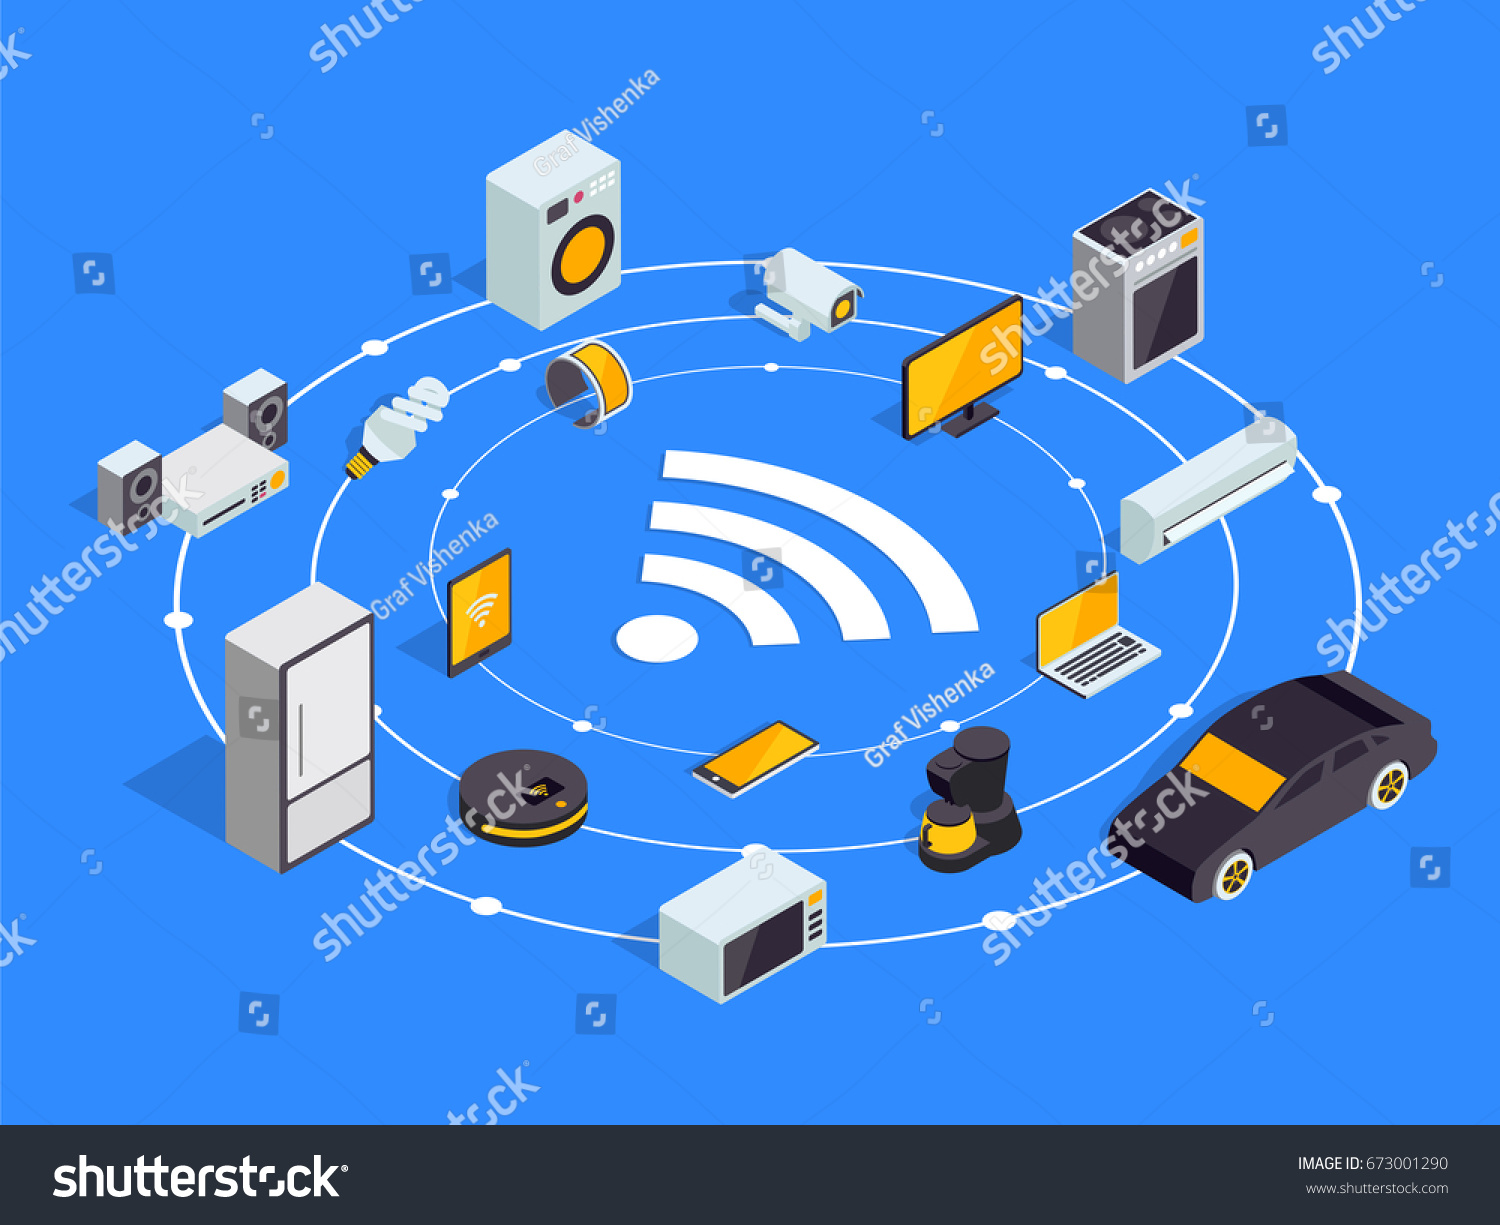 Internet of things layout. IOT online synchronization and connection via  smartphone wireless technology. Smart